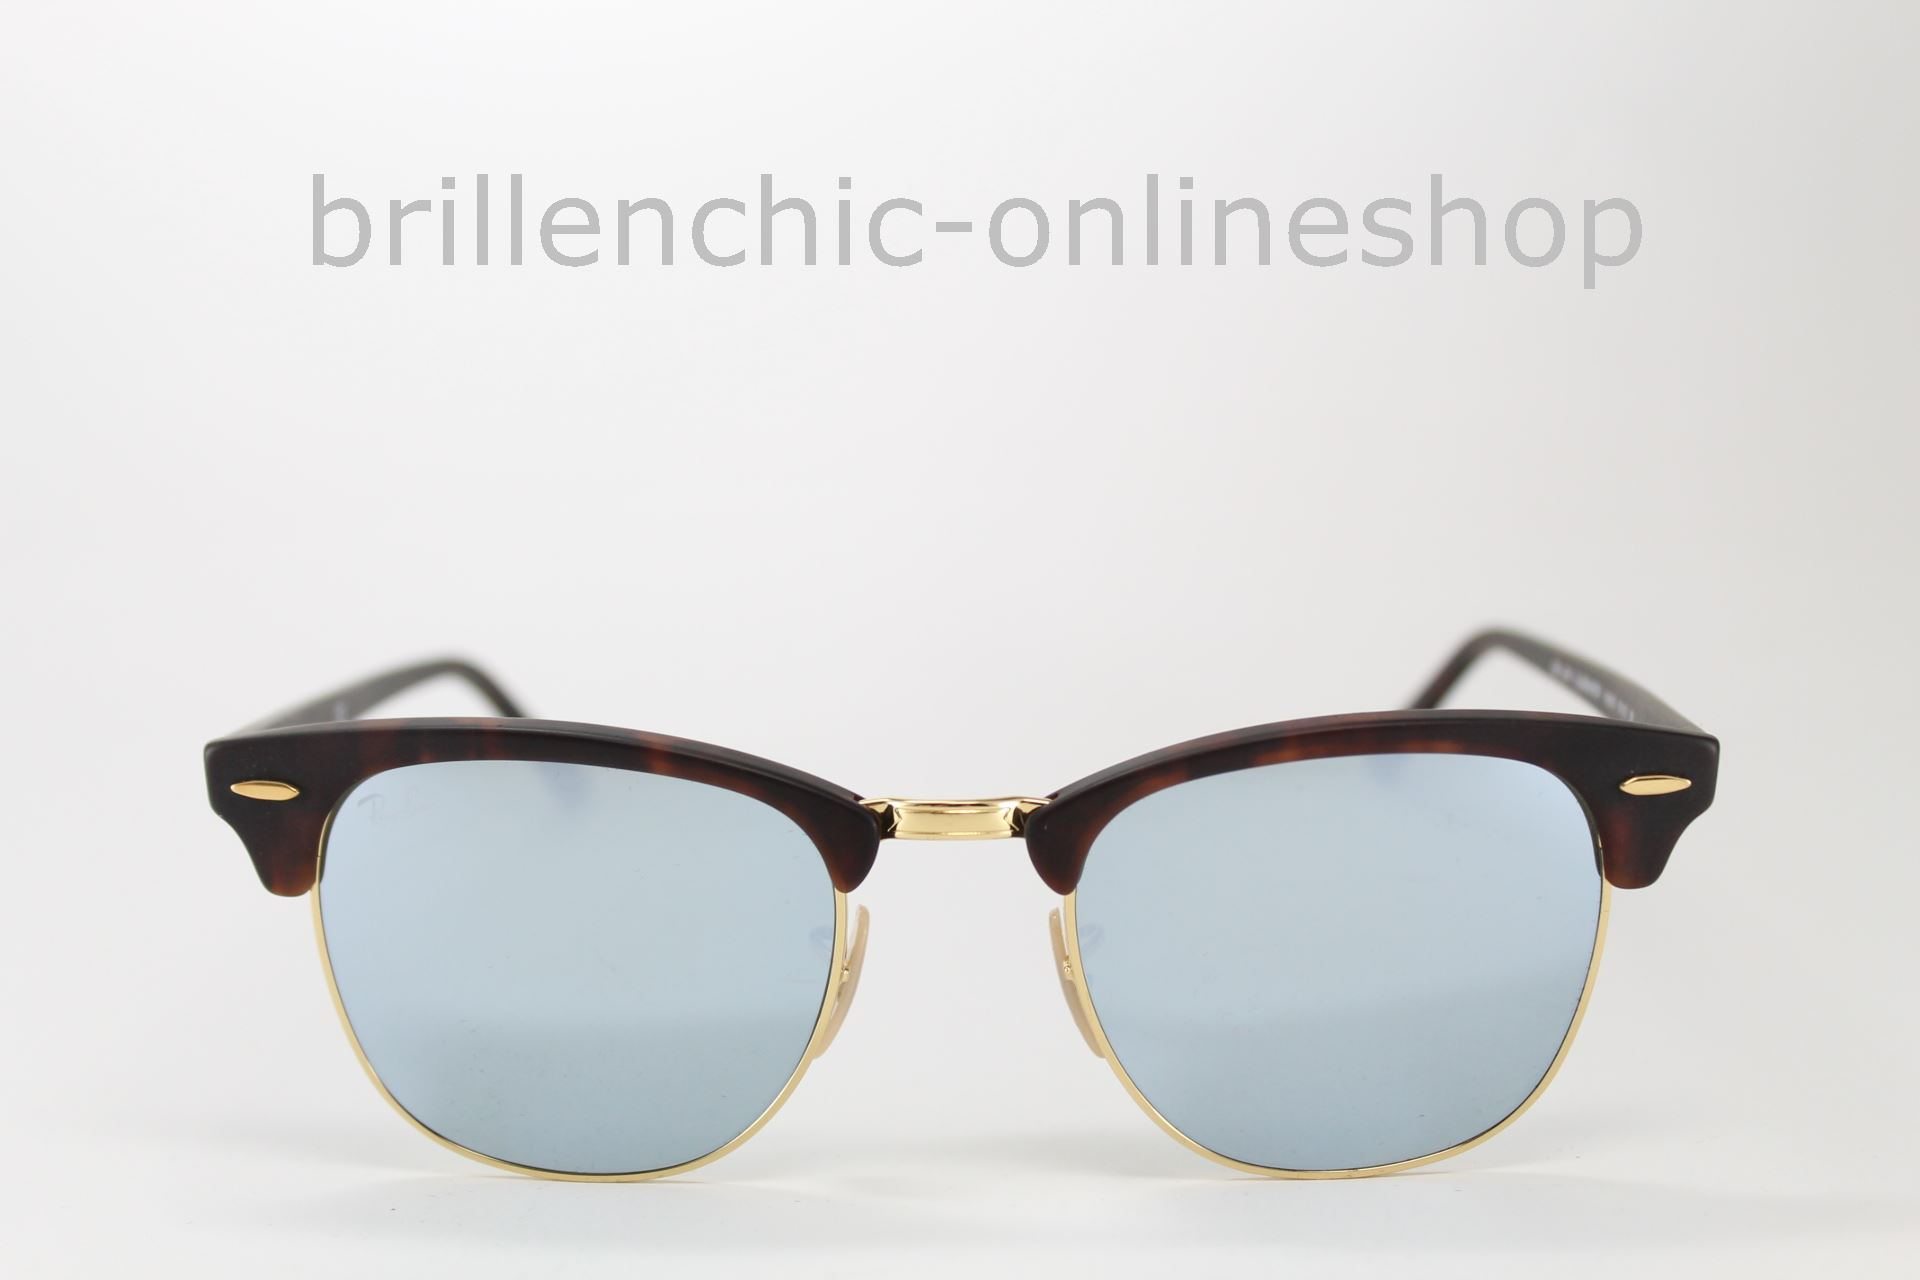 19315074c00 Brillenchic-onlineshop in Berlin - Ray Ban CLUBMASTER RB 3016 1145 30